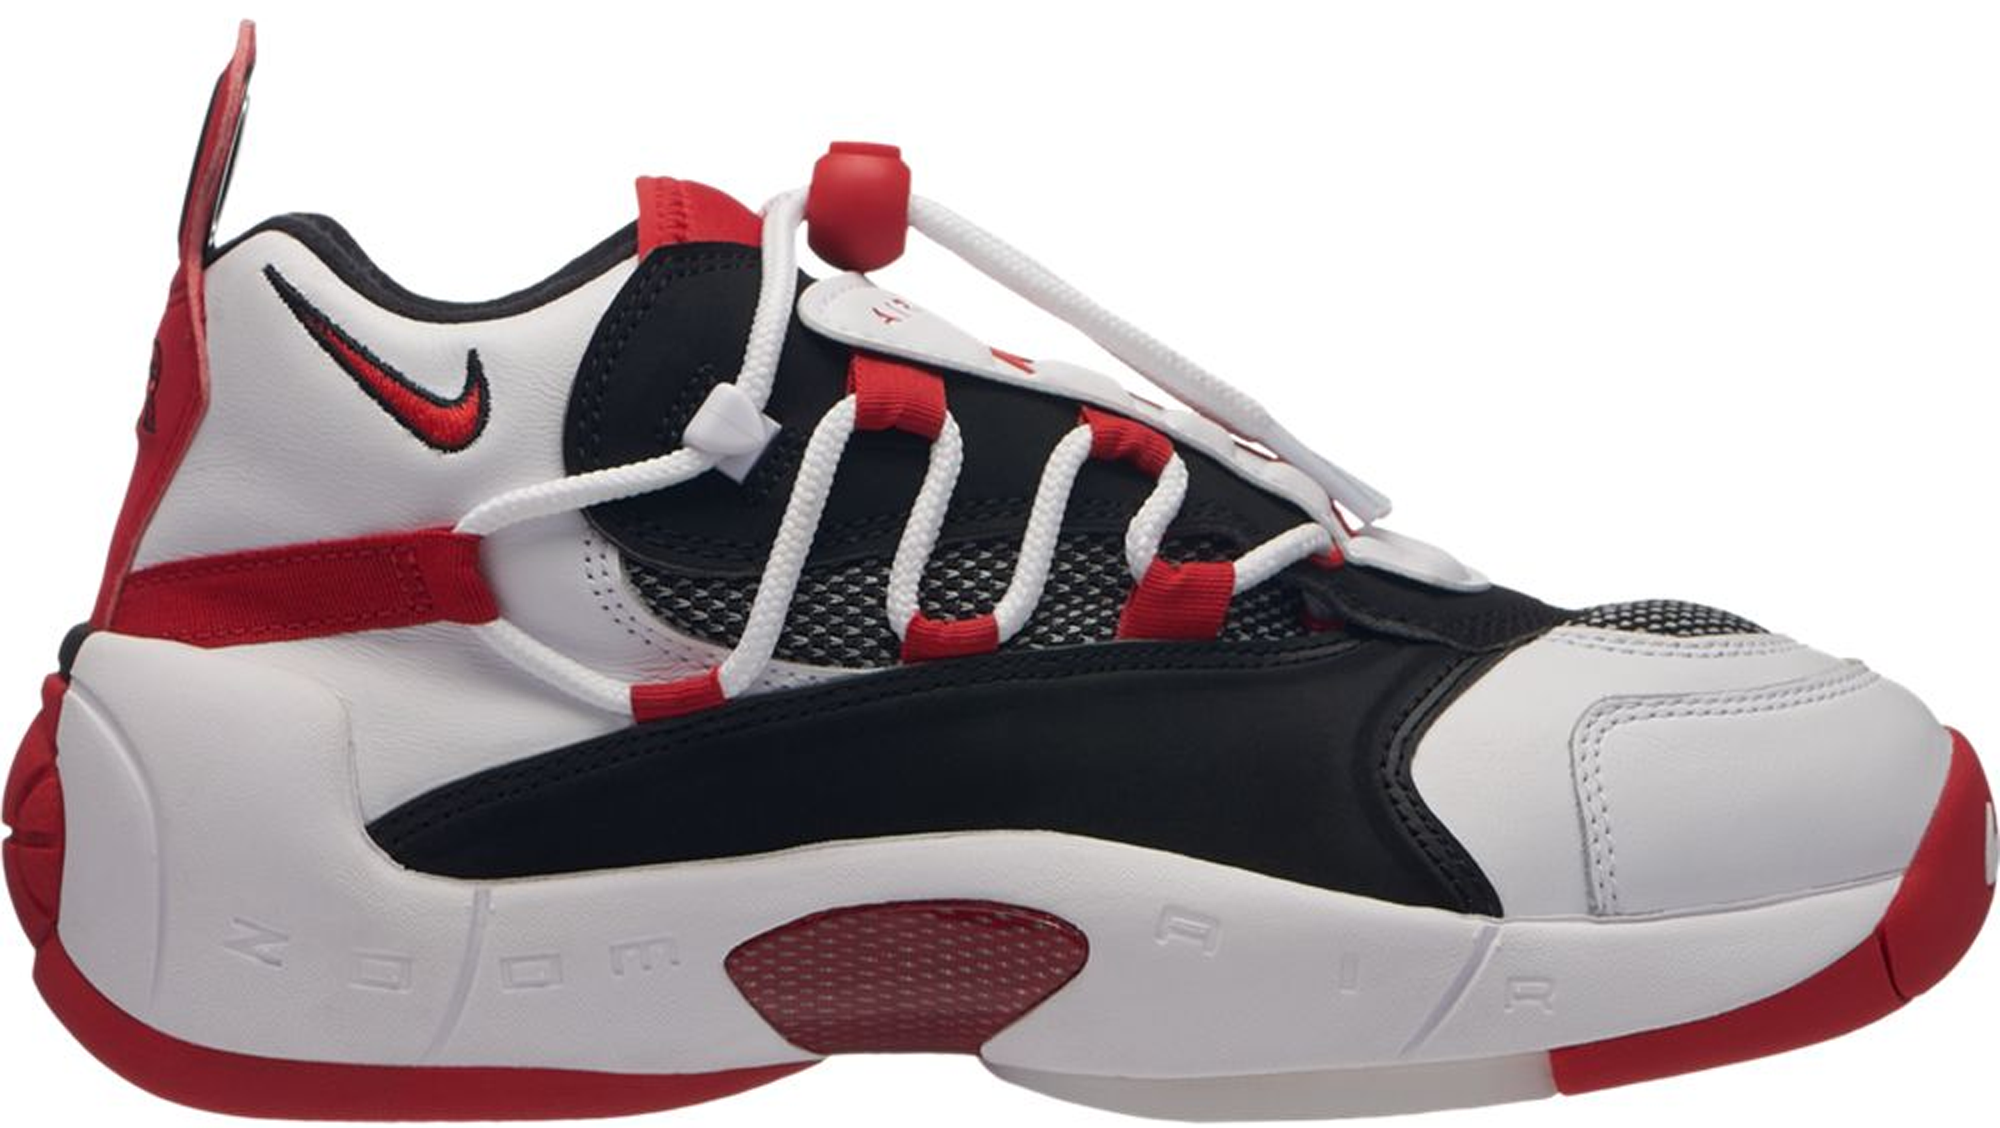 ... swoopes 2 ii white red release date 917592 100 medial get nike shoes  release date 1d196 ac293 ... 1426cb420